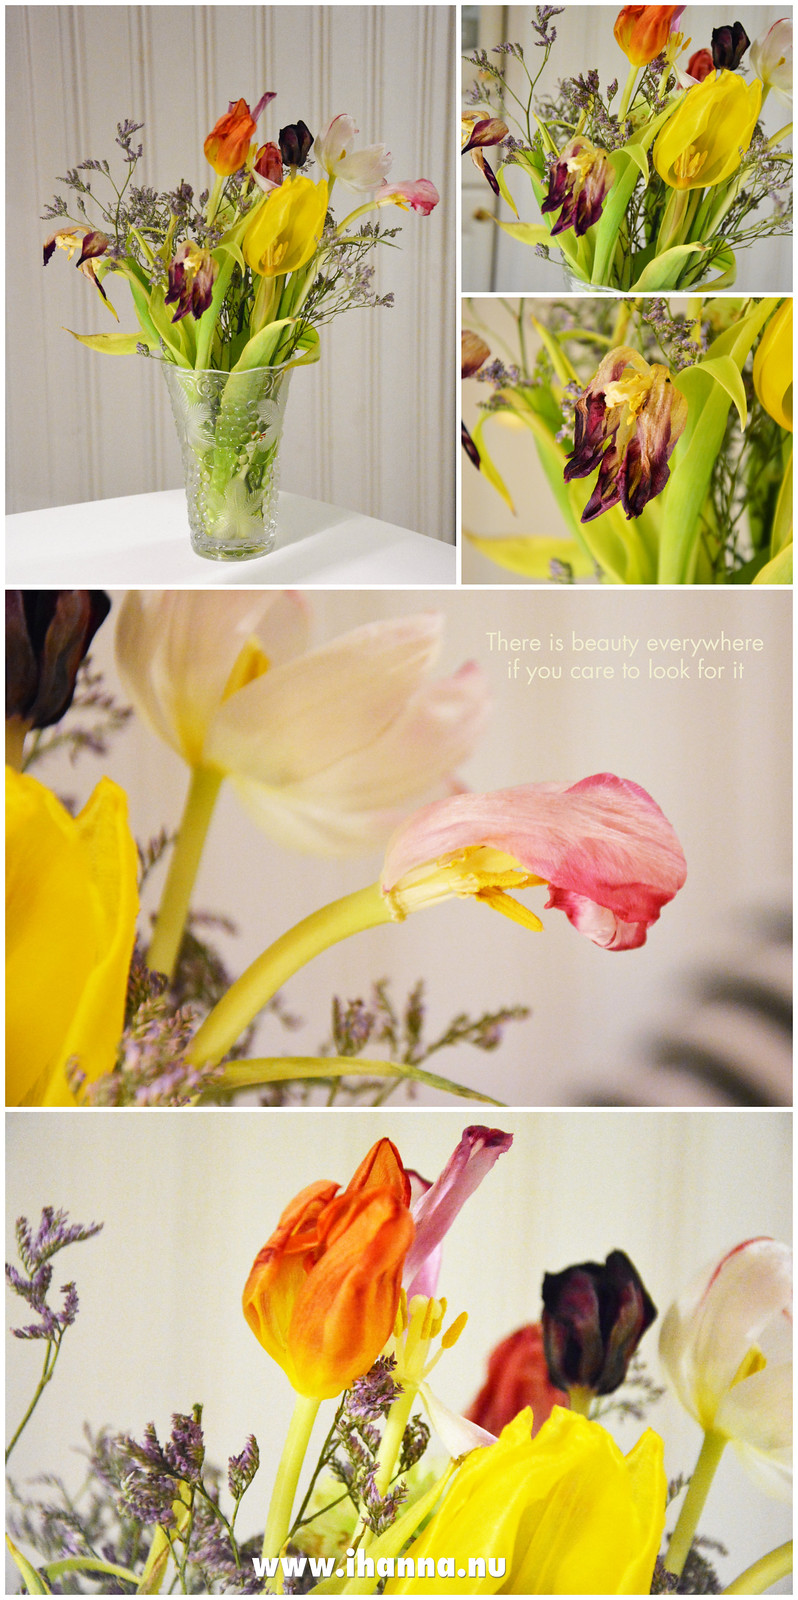 I think they are just as beautiful - the wittered tulips by iHanna